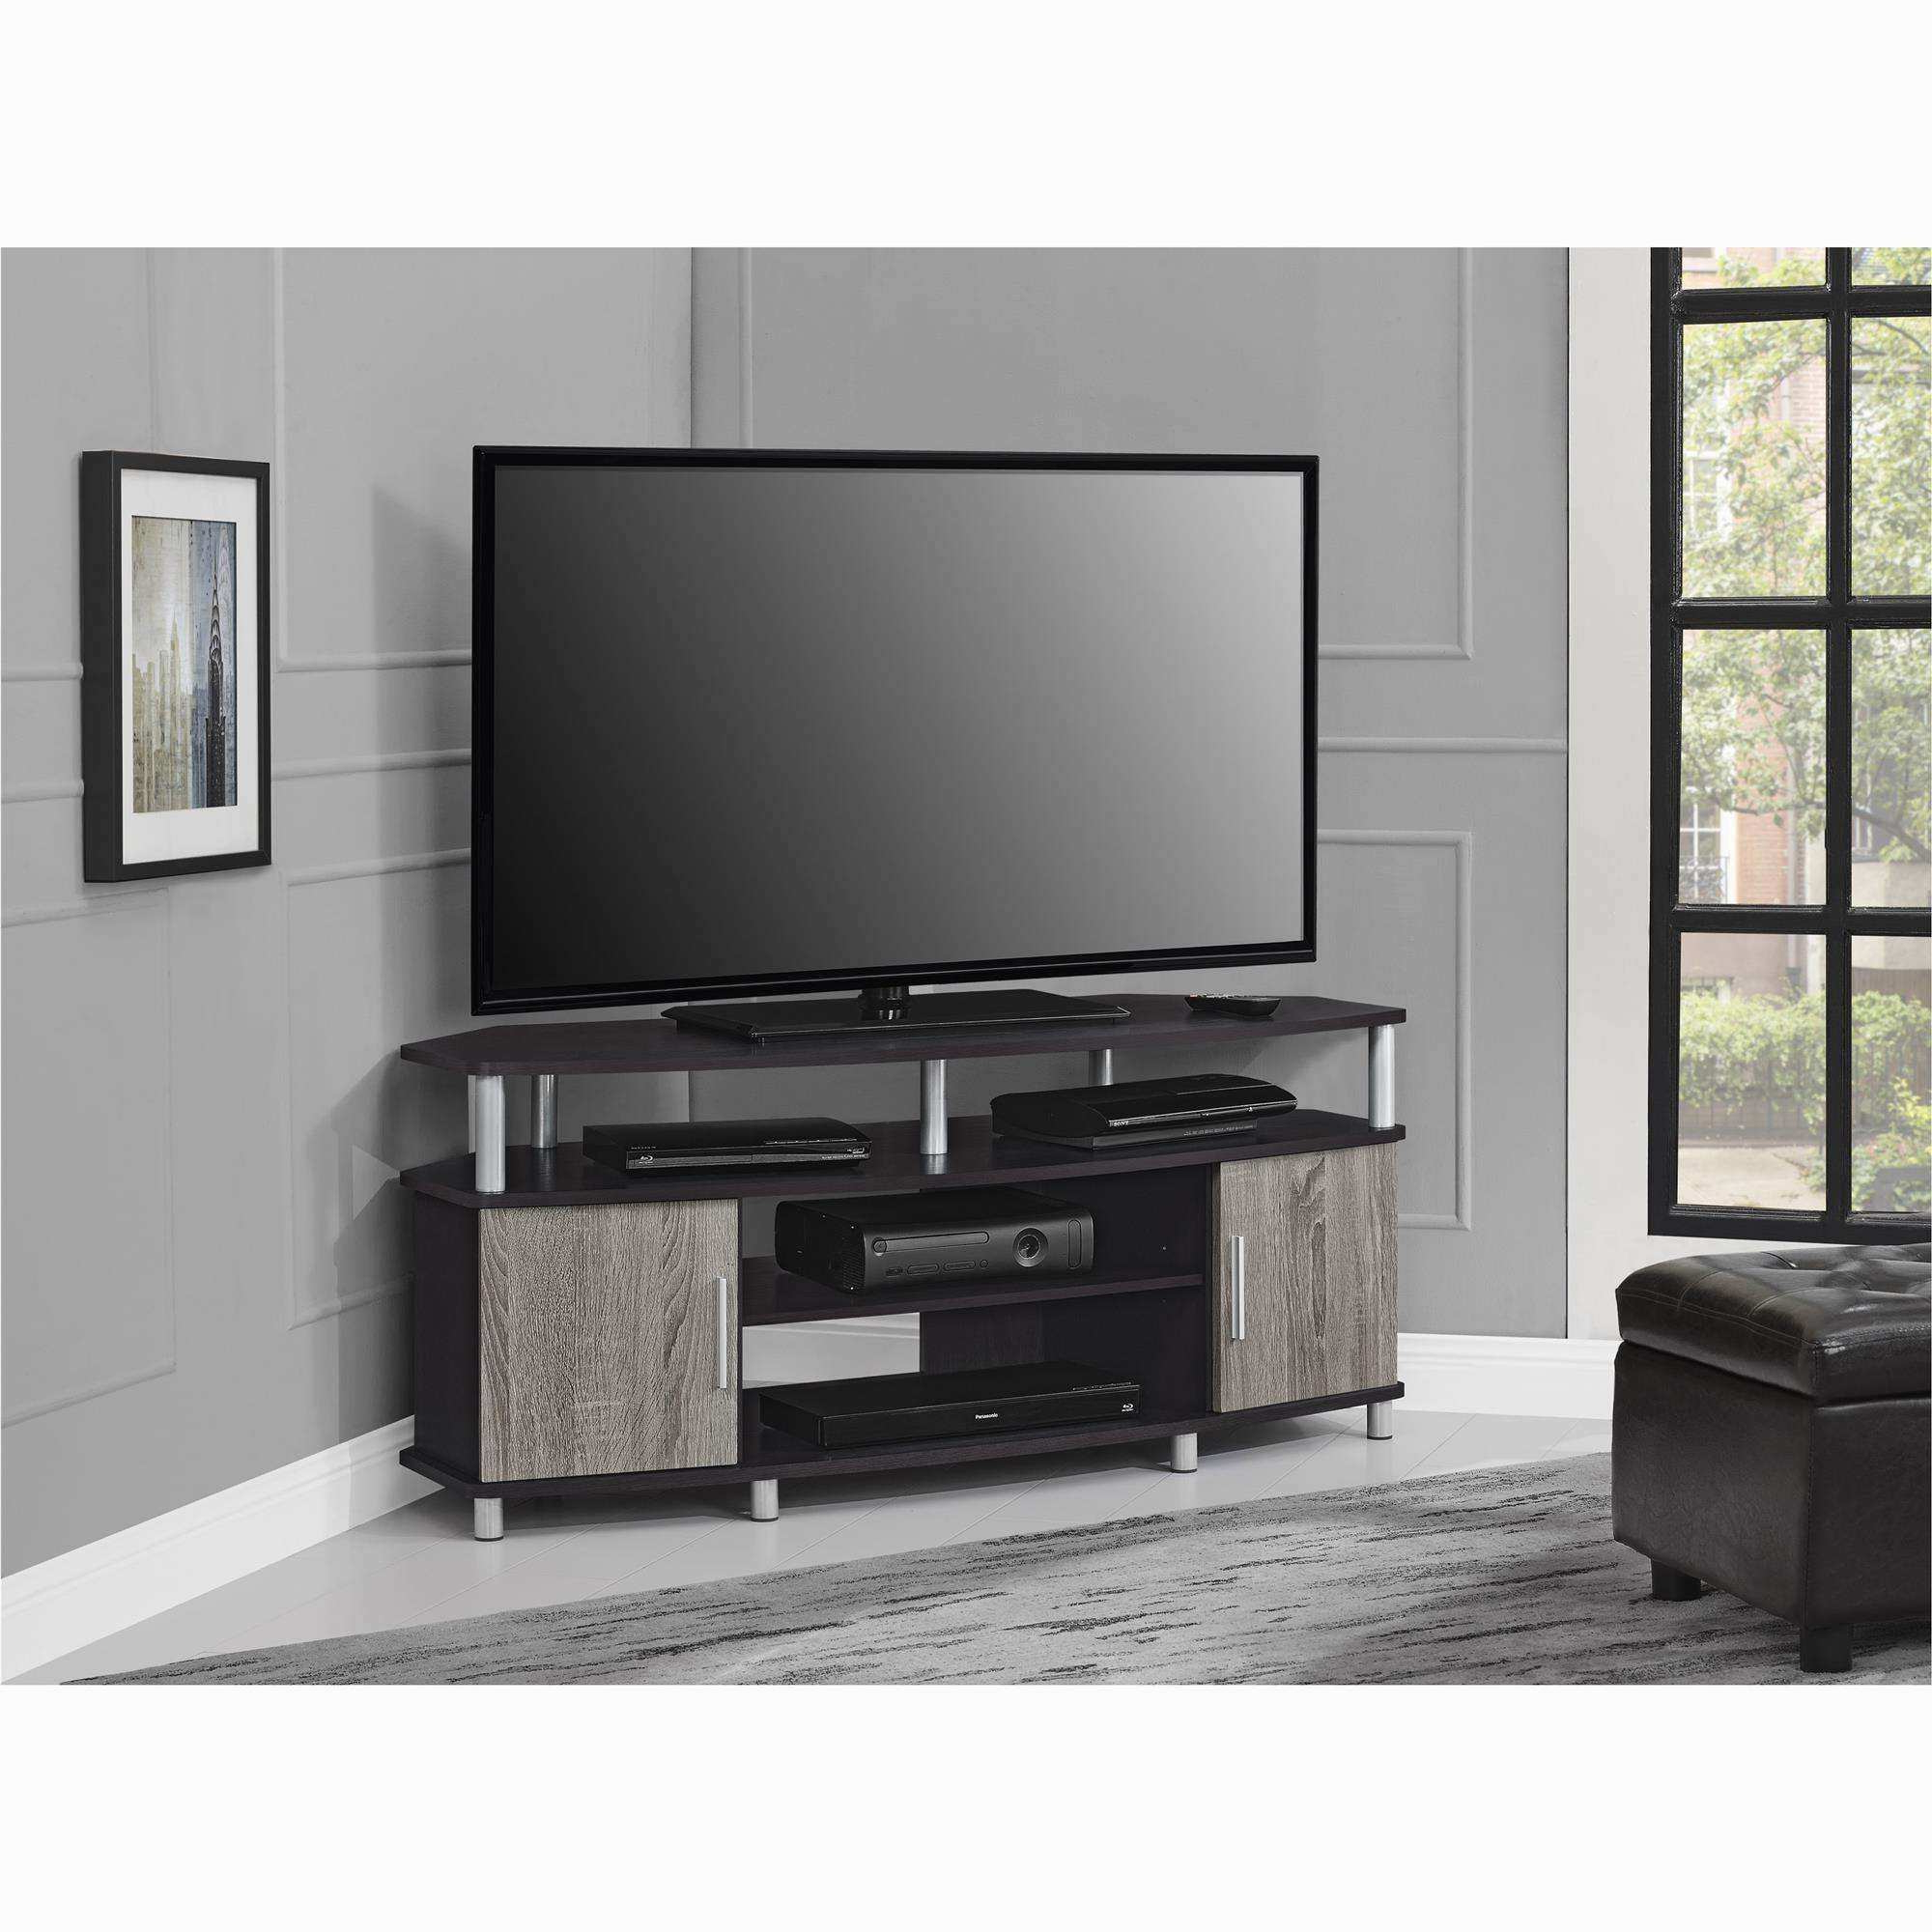 Most Popular Absolutely Ideas 50 Corner Tv Stand Pedestal Stands For Flat Screens With Cheap Corner Tv Stands For Flat Screen (View 14 of 20)